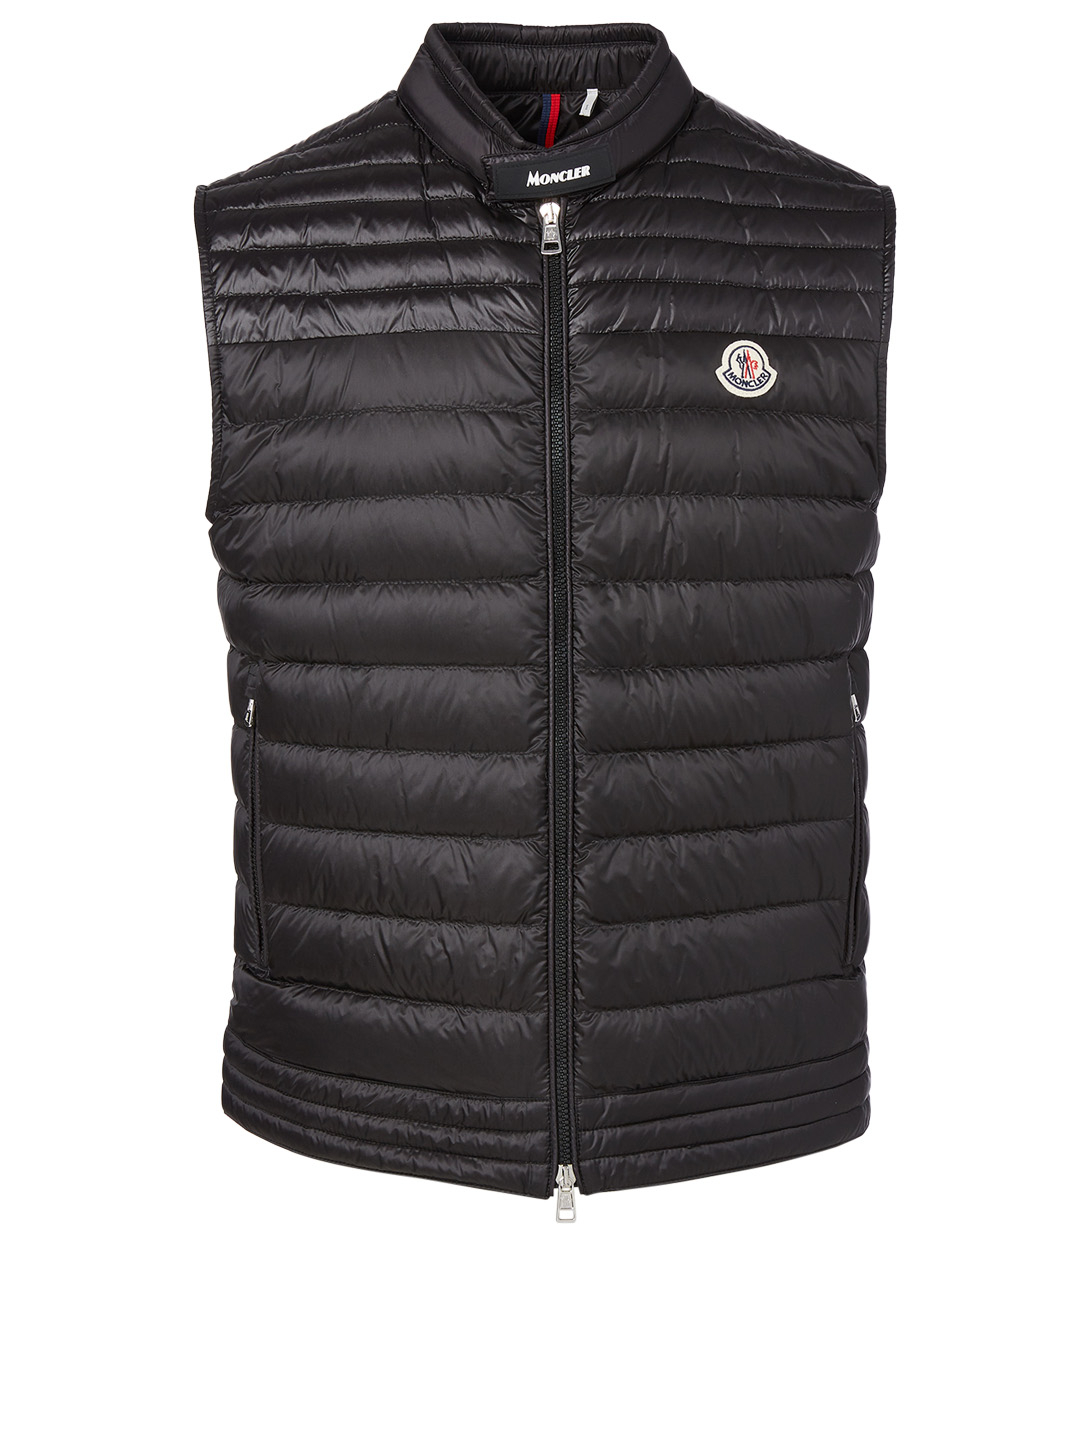 MONCLER Gir Quilted Vest Men's Black